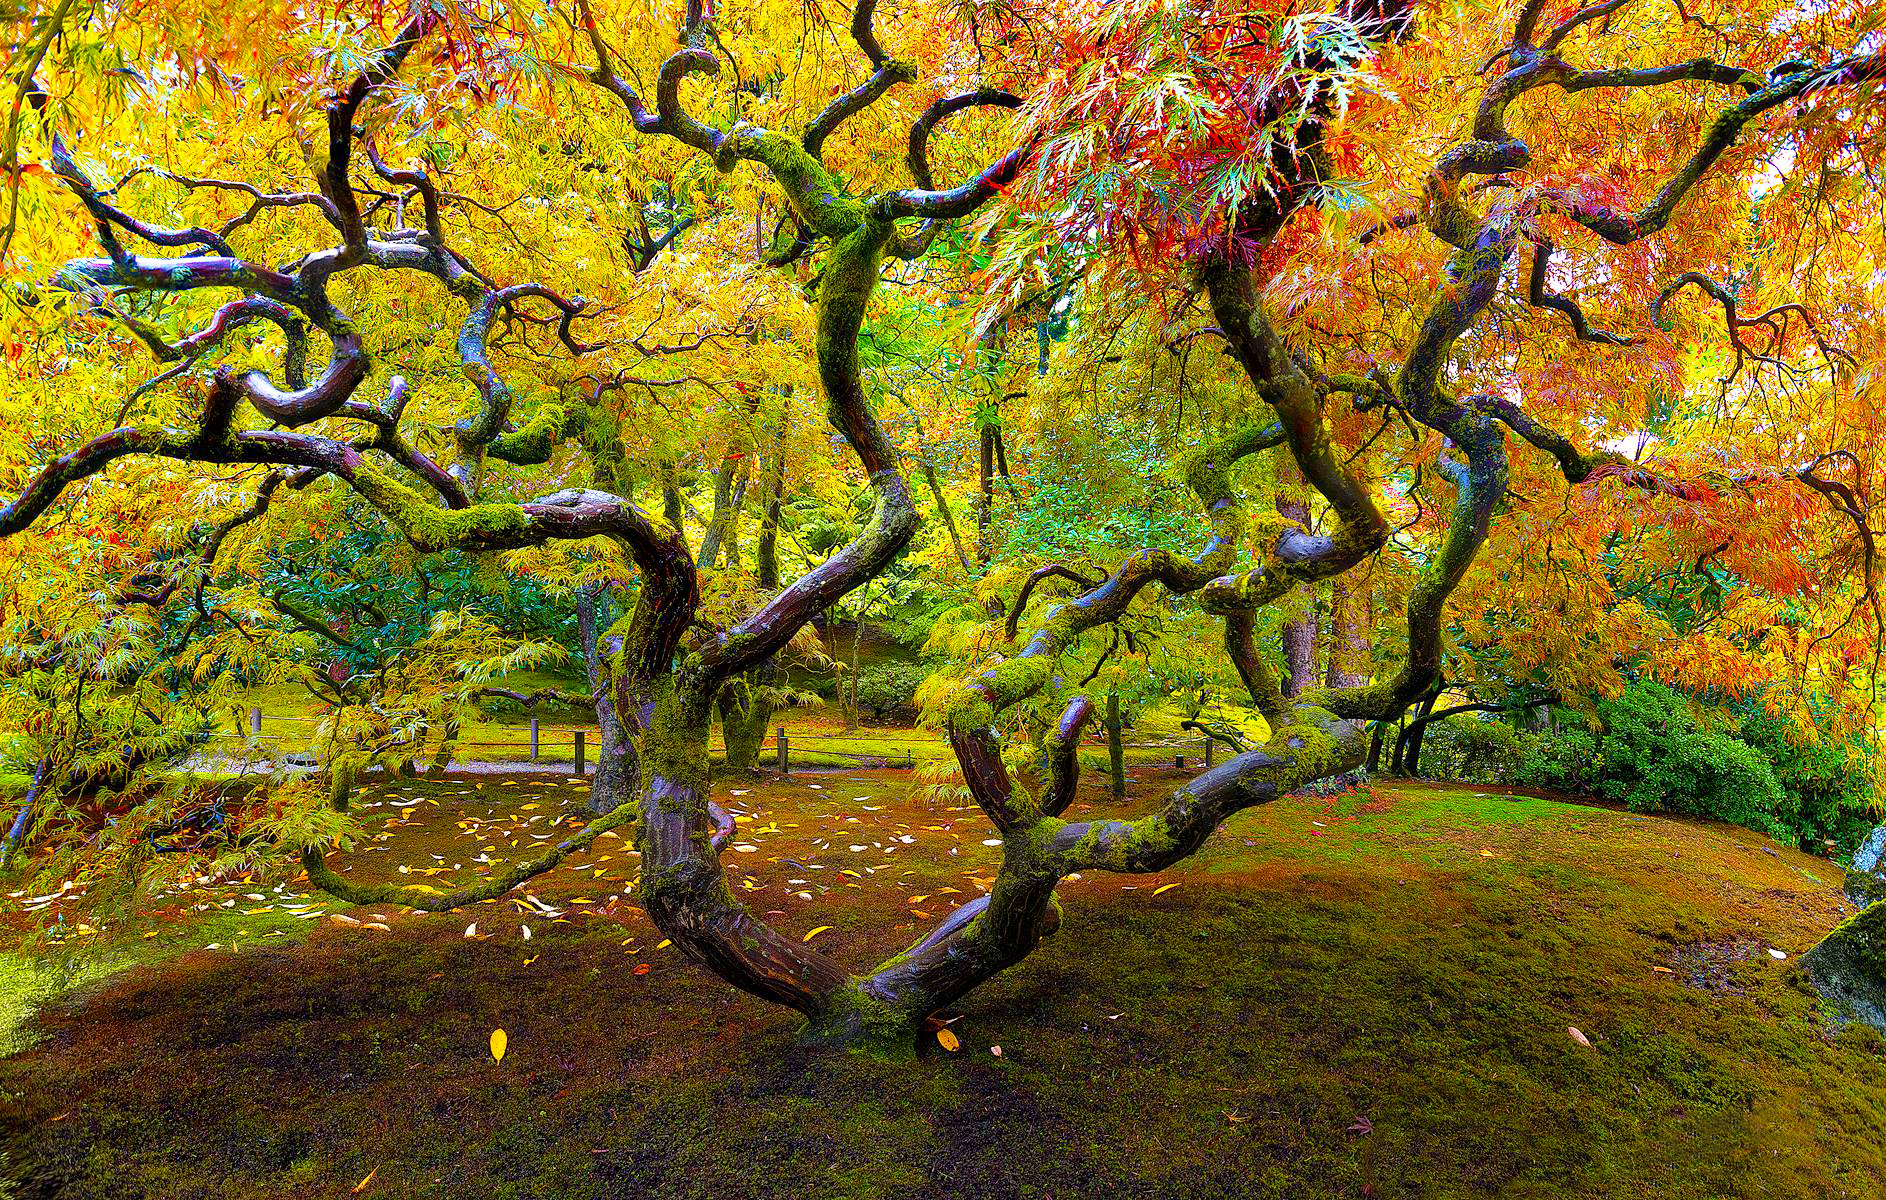 6 tips for shooting fall color: Digital Photography Review